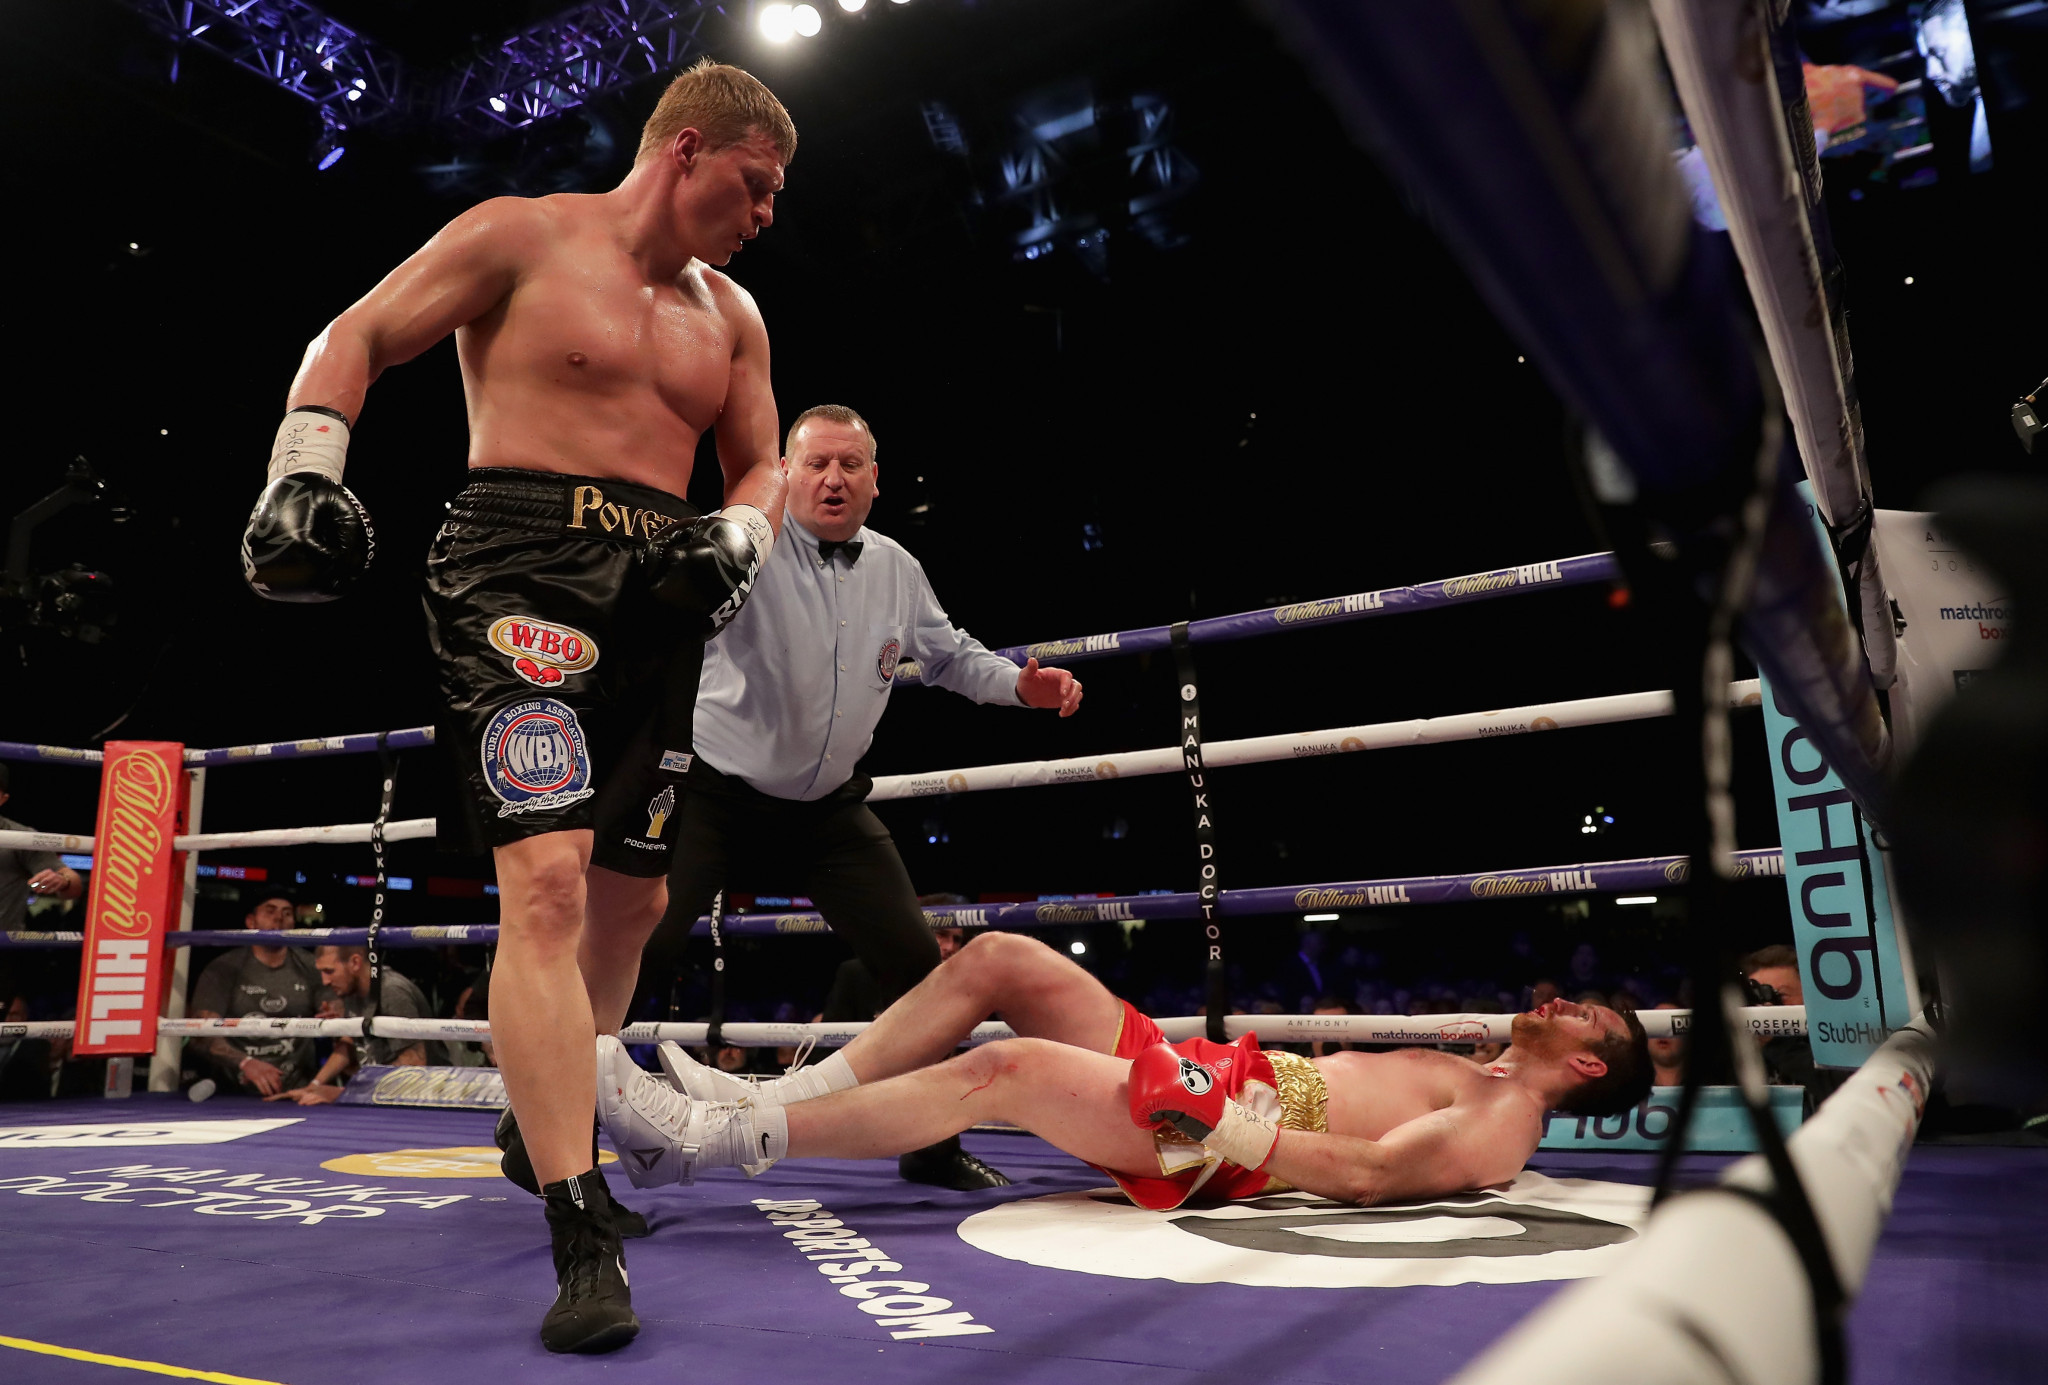 Russia's world heavyweight champion and Olympic gold medallist Alexander Povetkin has twice failed drugs tests during his professional career but been allowed to continue fighting ©Getty Images